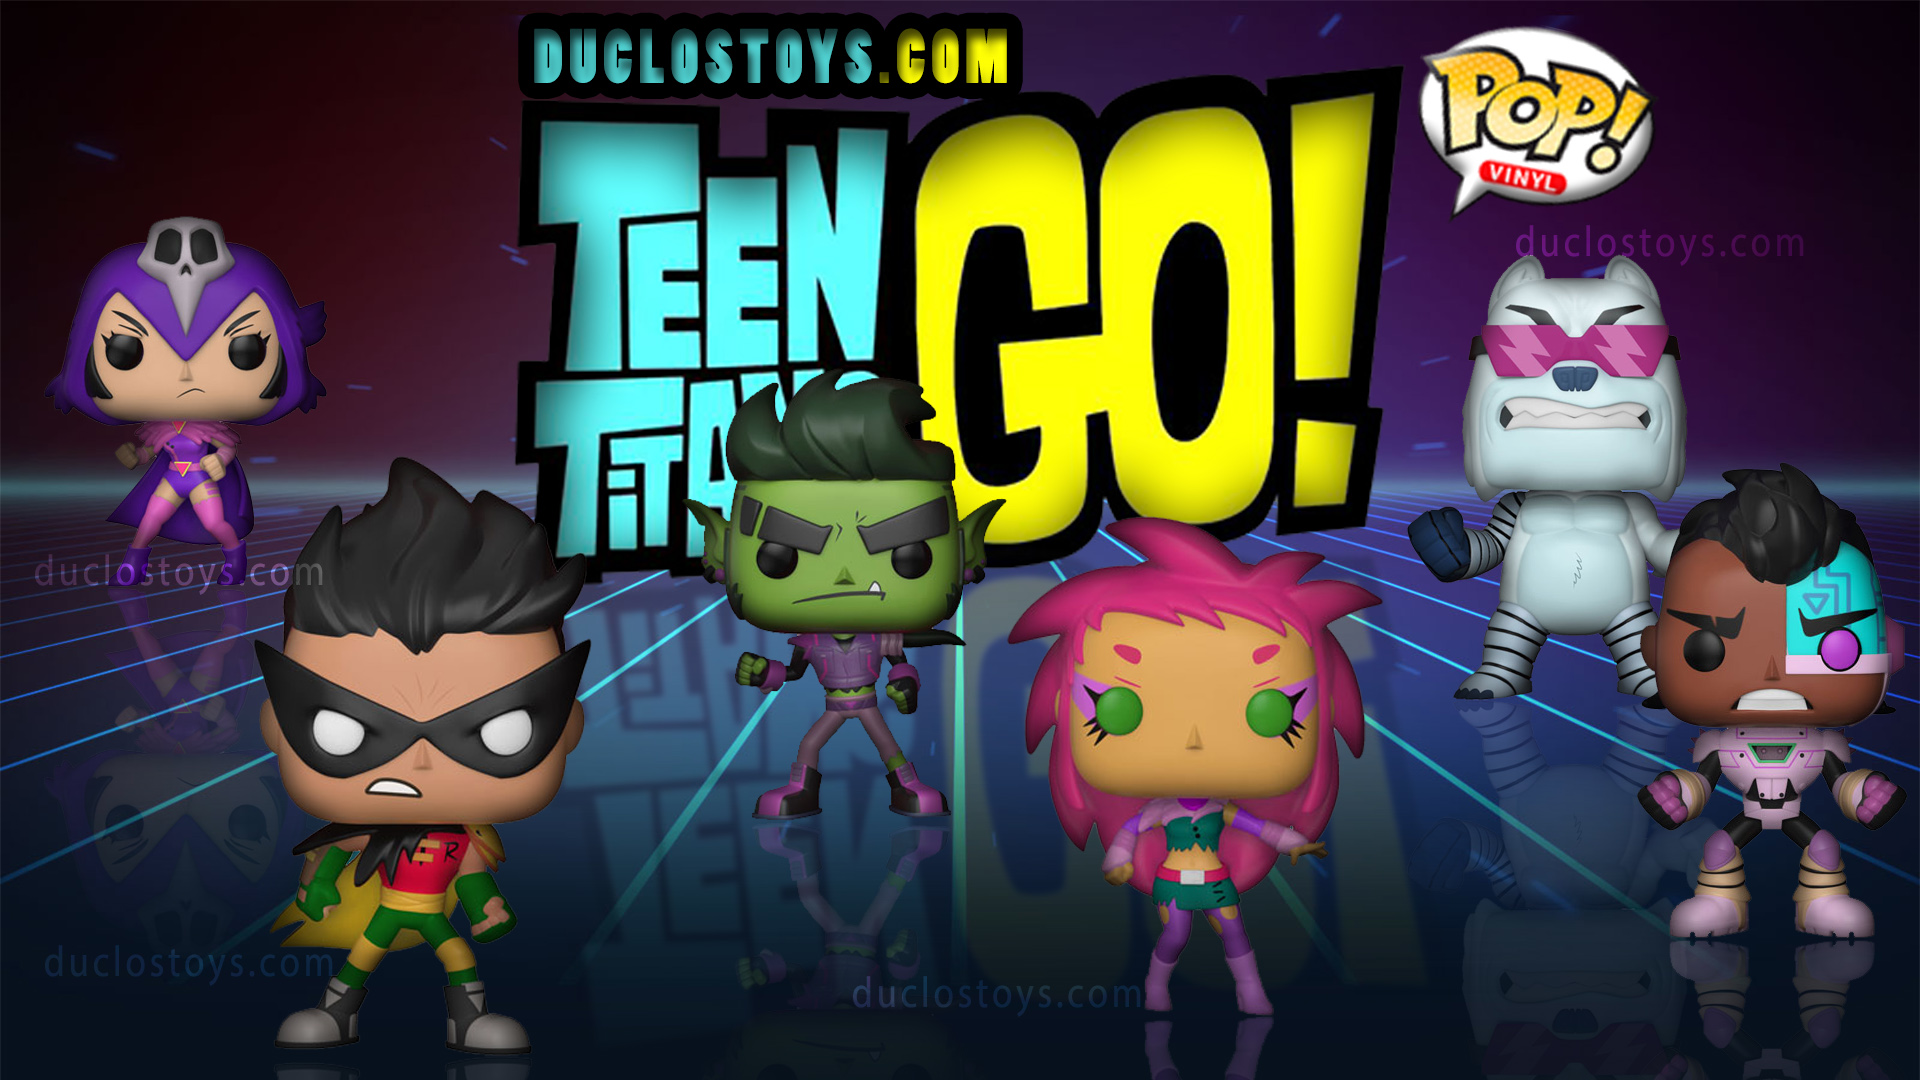 Duclos Toys - Funko Pop Television - Teen Titans Go! The Night Begins To Shine